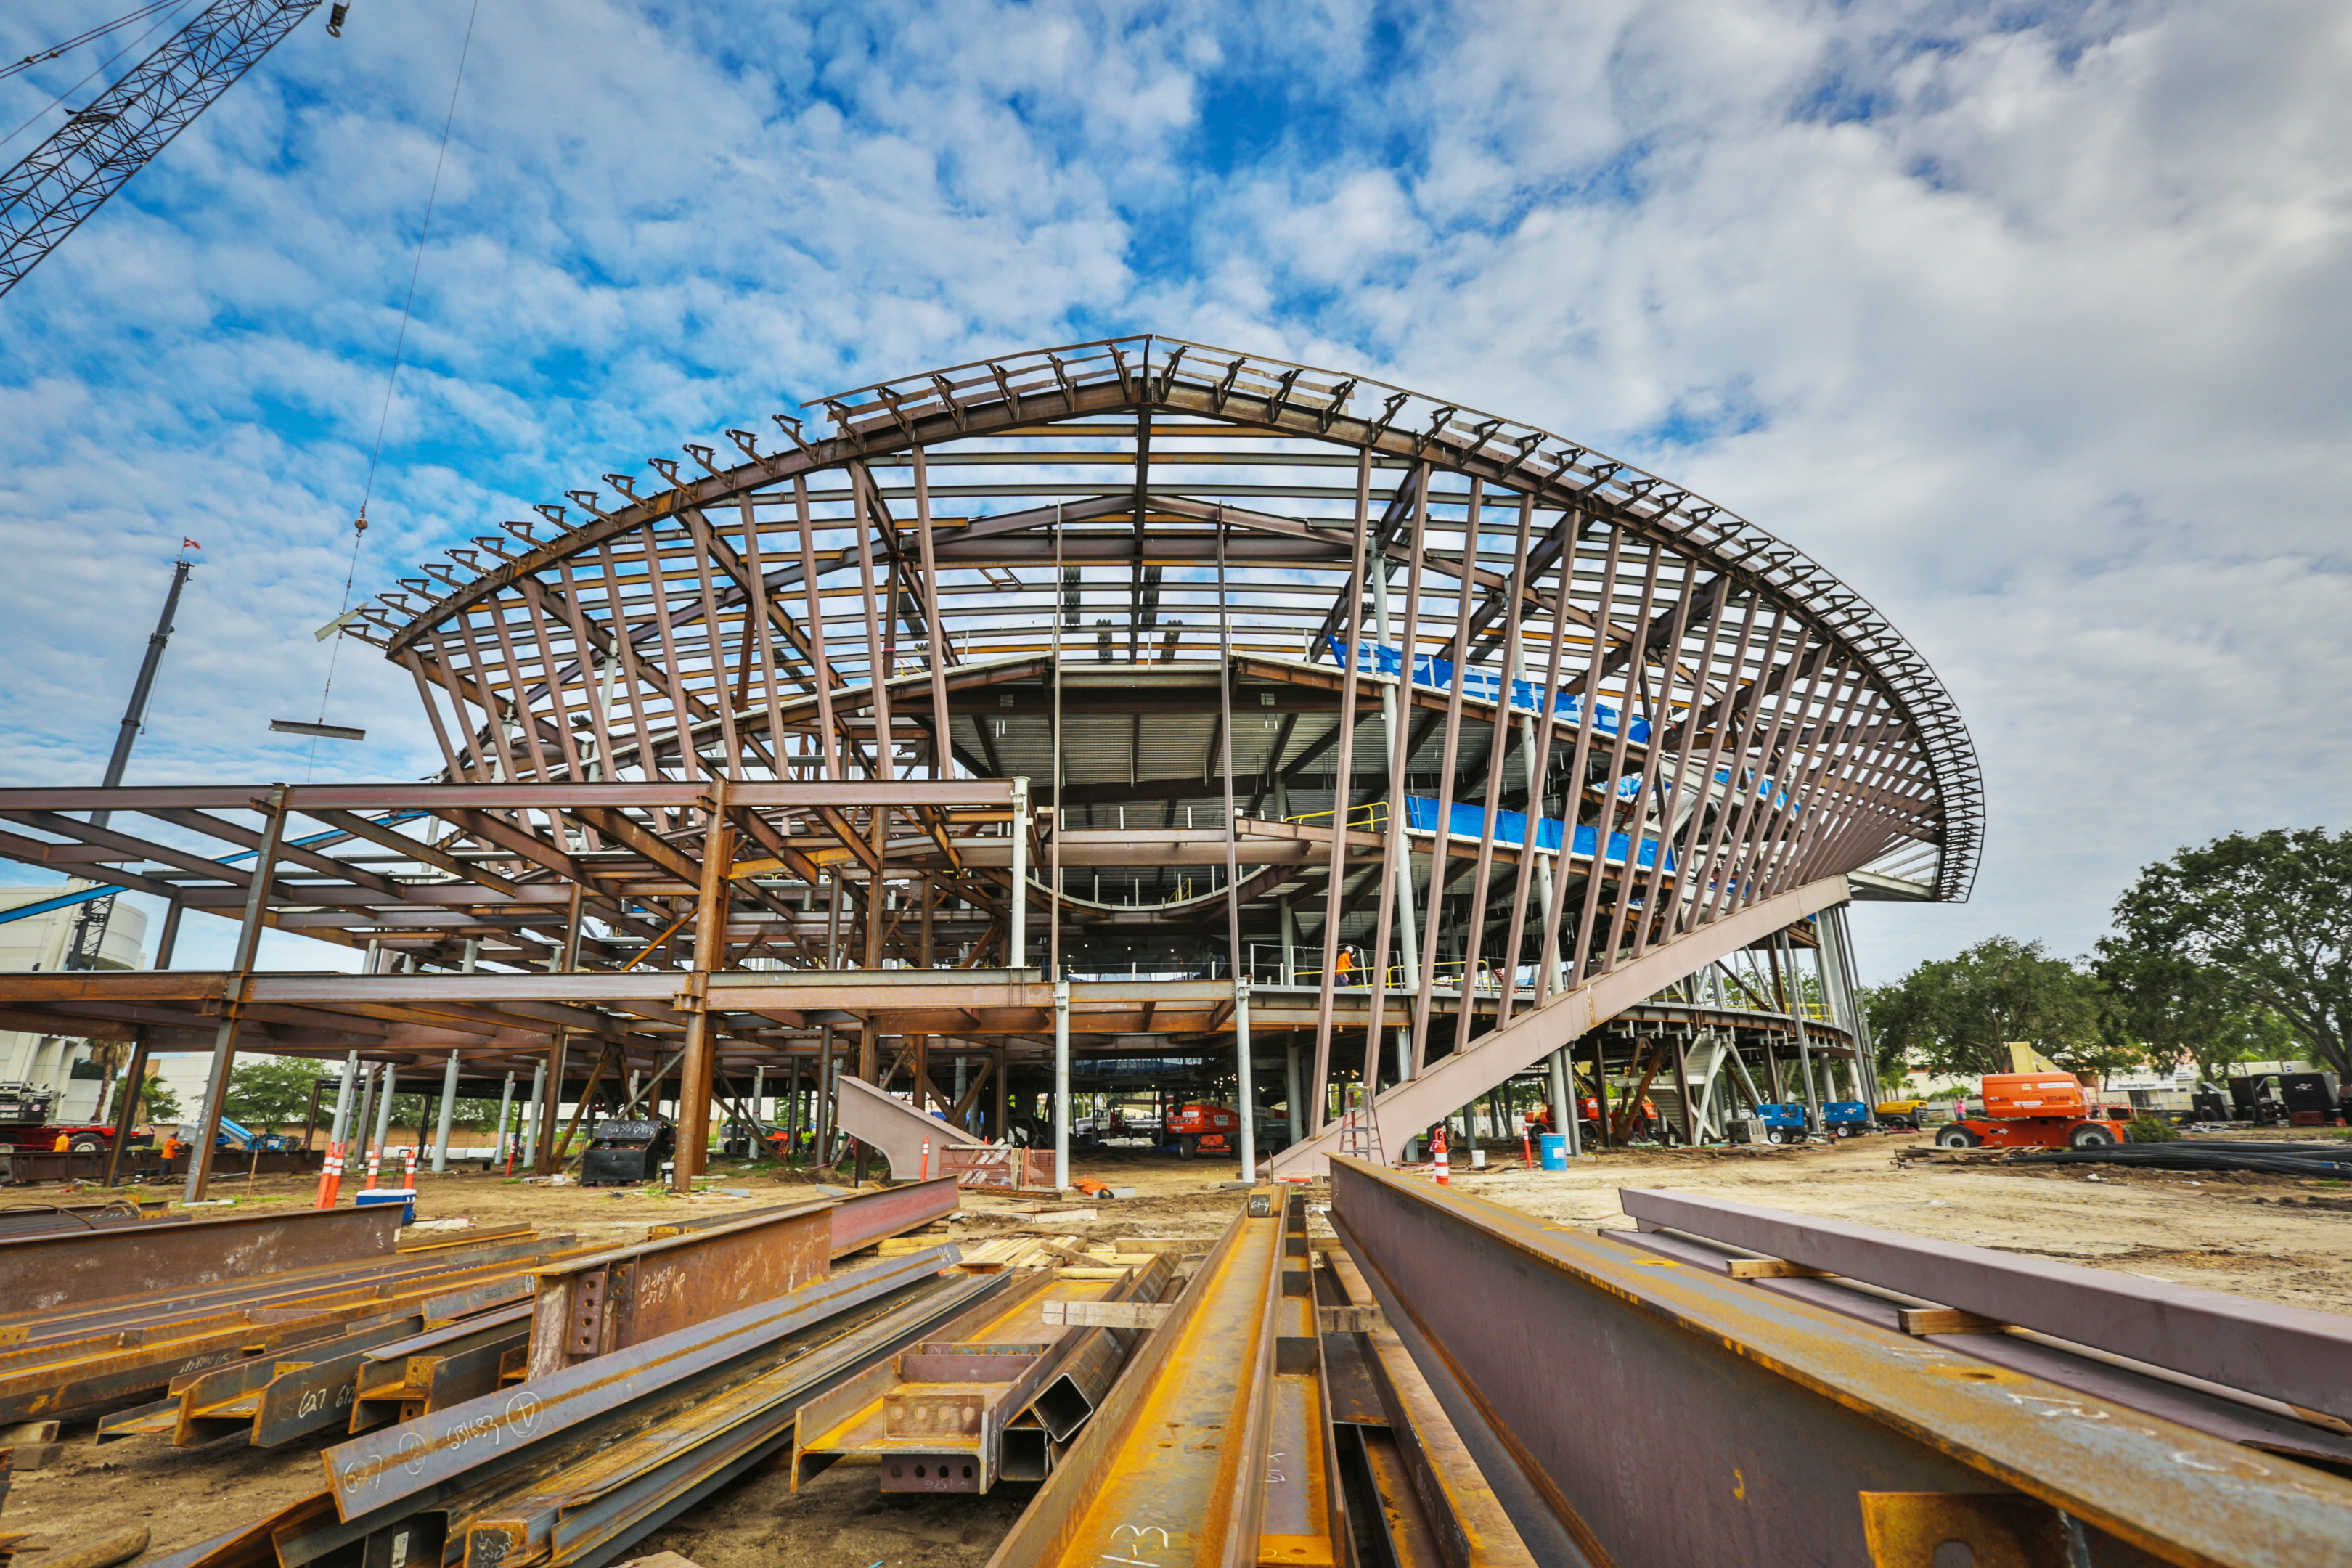 20170620 Student Union 1571 The New Under Construction At Embry Riddle Aeronautical University In Daytona Beach June 20 2017